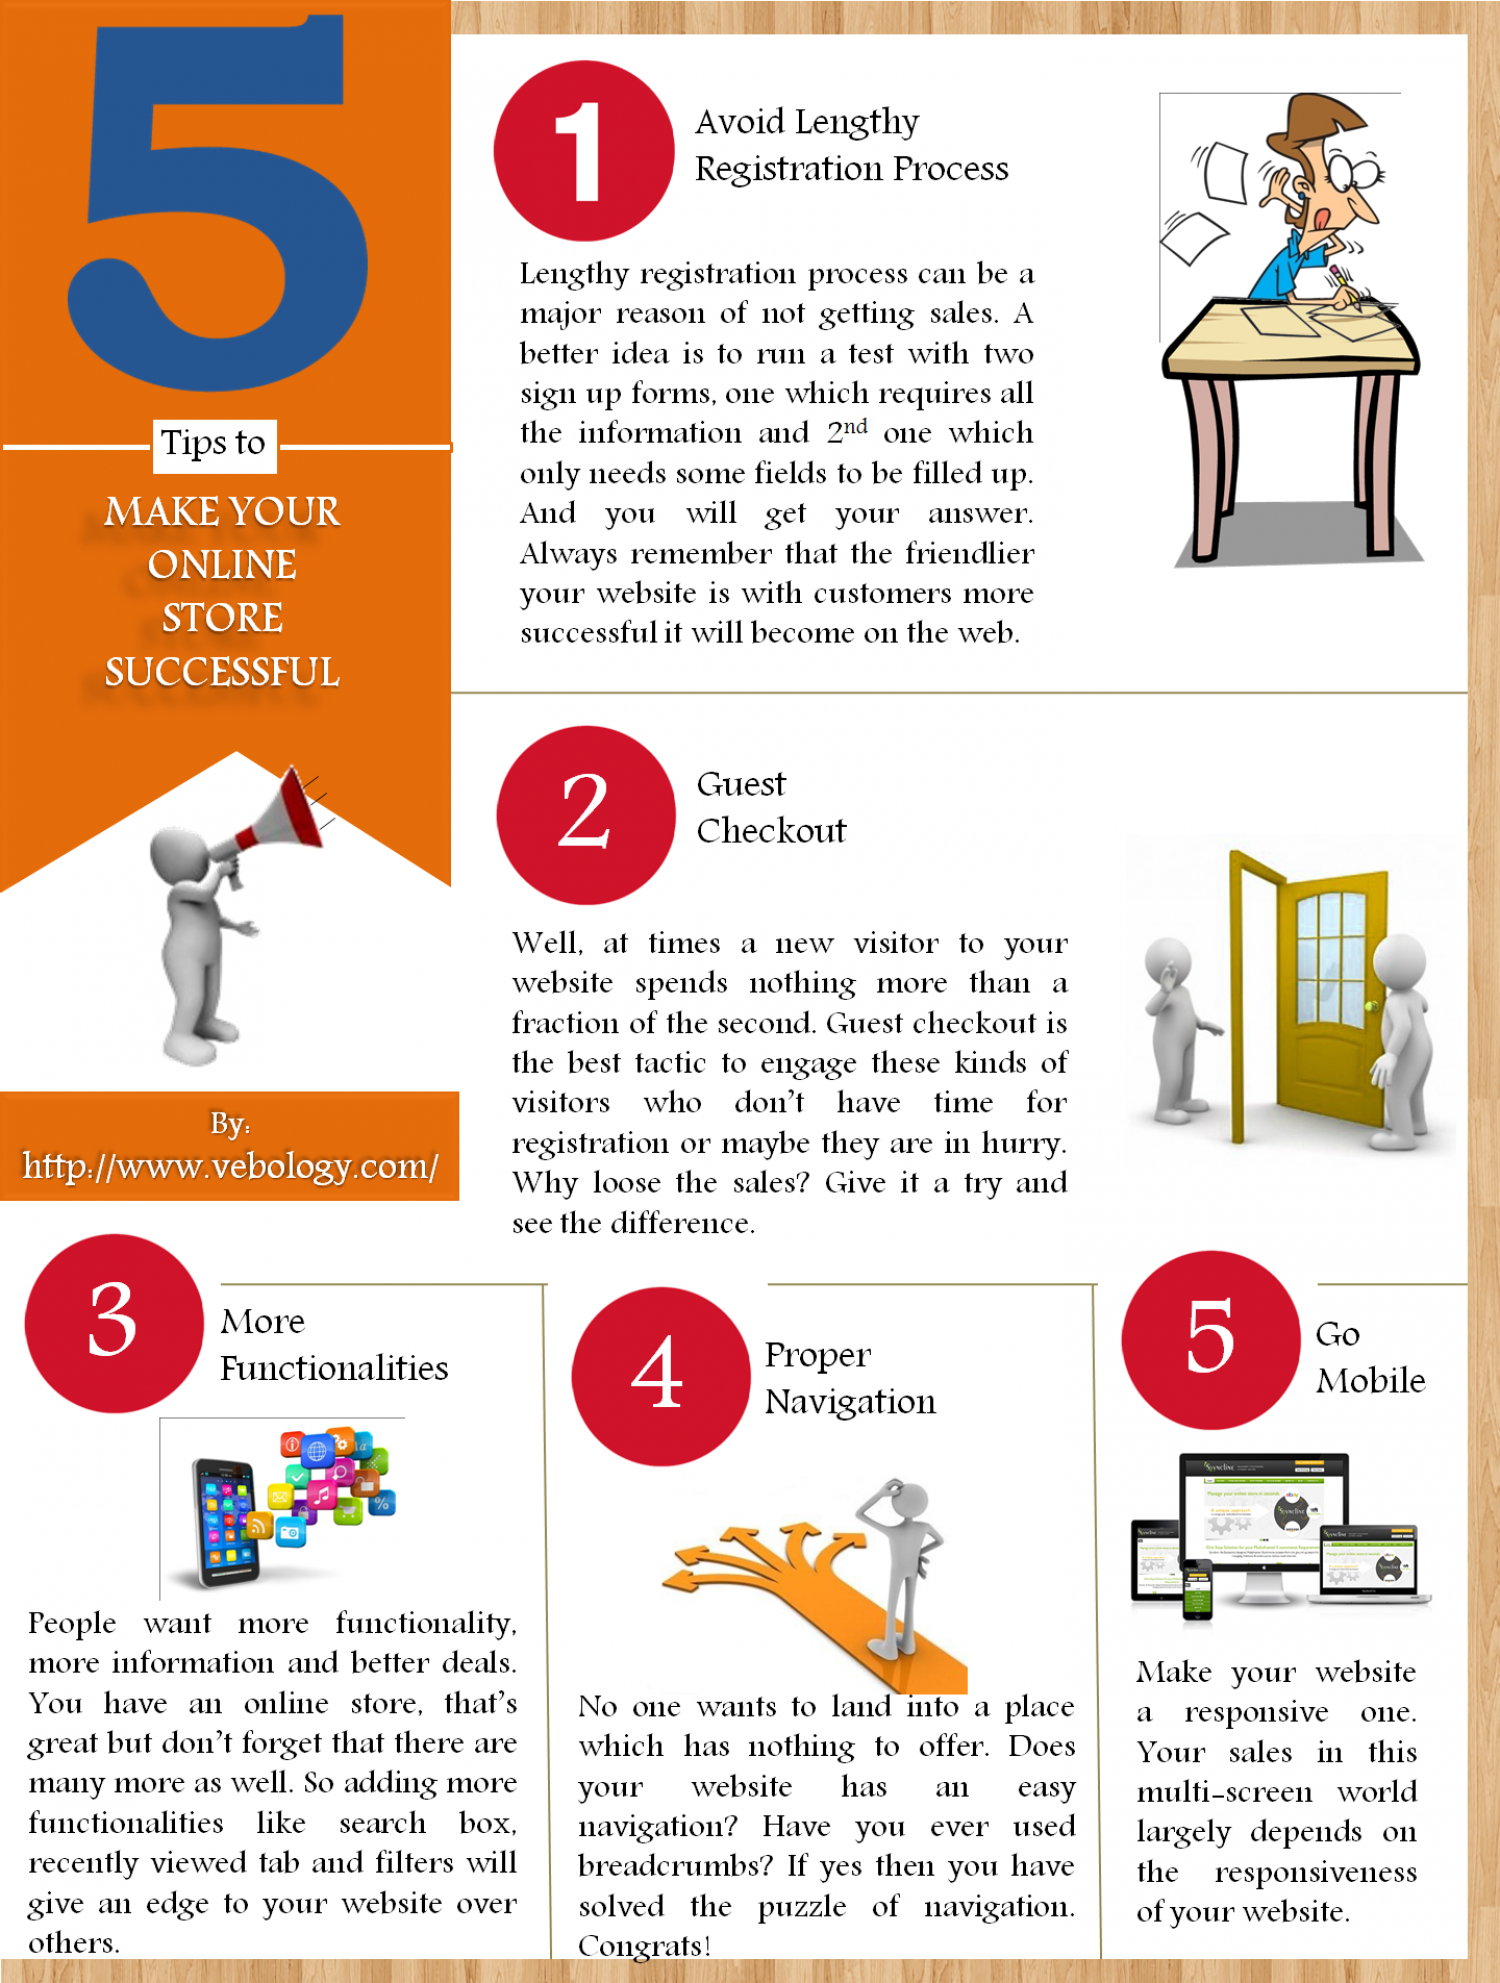 5 Tips to Make Your Online Store Successful Infographic